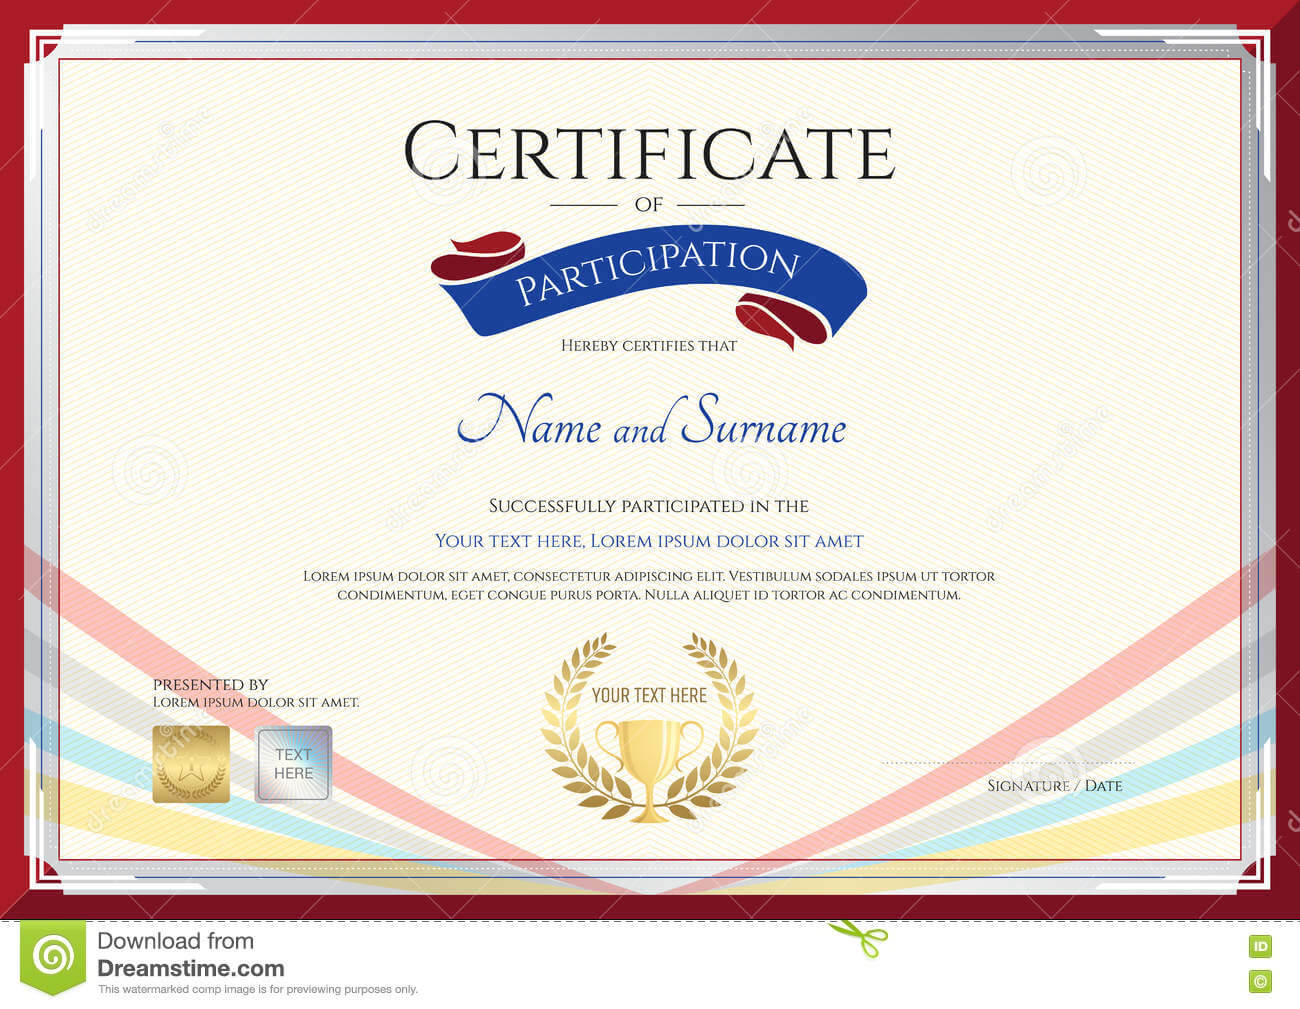 Certificate Template For Achievement, Appreciation Or With Regard To Conference Participation Certificate Template